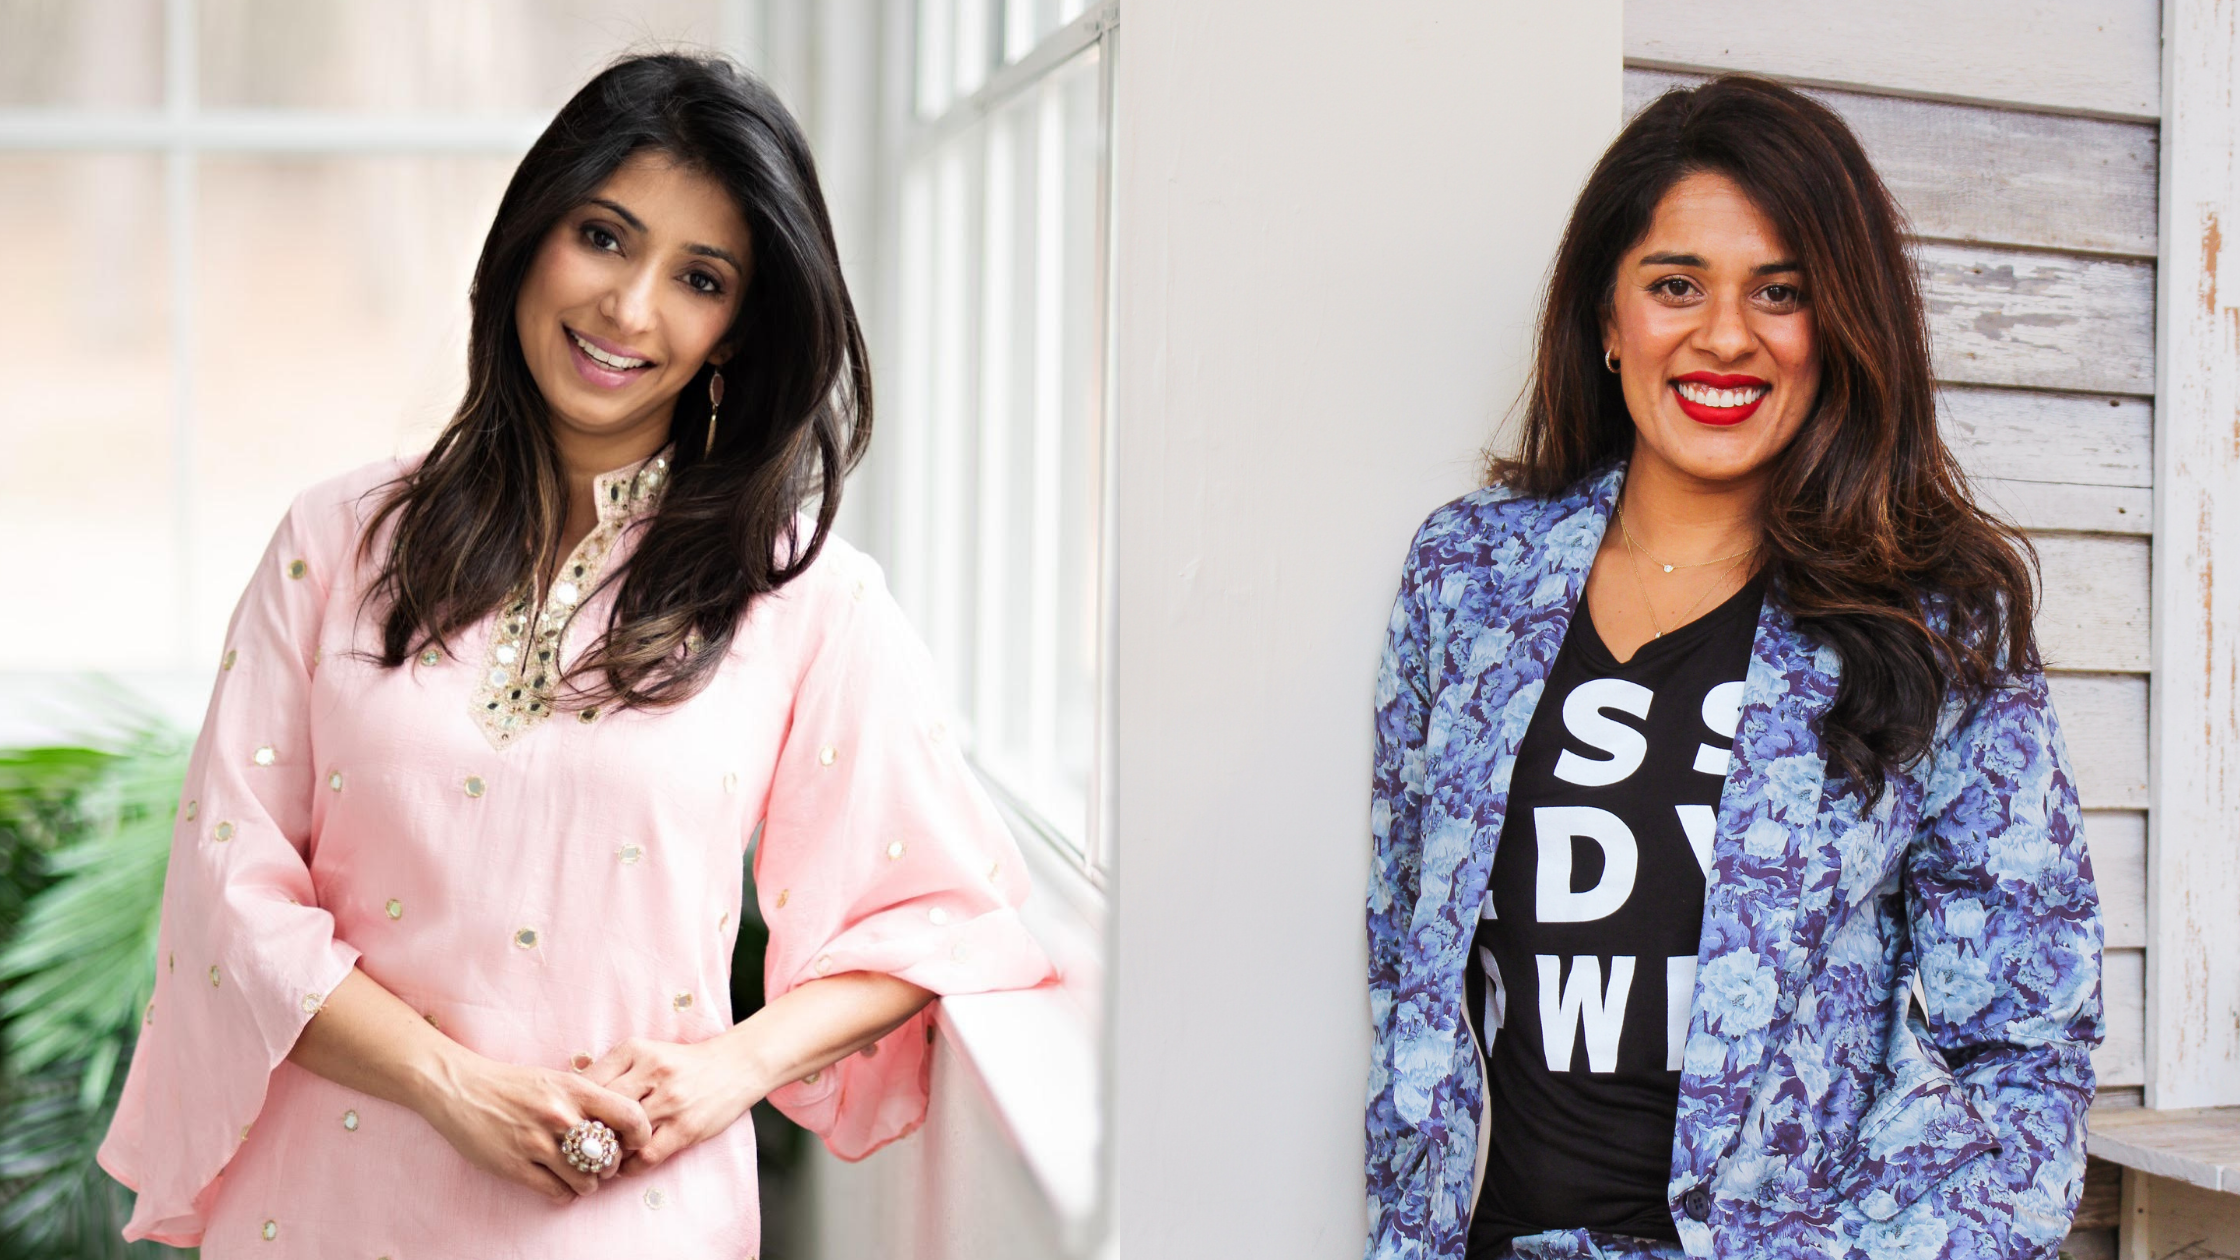 Exclusive Zaftan Interview – Two Boss Ladies Help Save The Earth And Decrease Fashion's Carbon Footprint